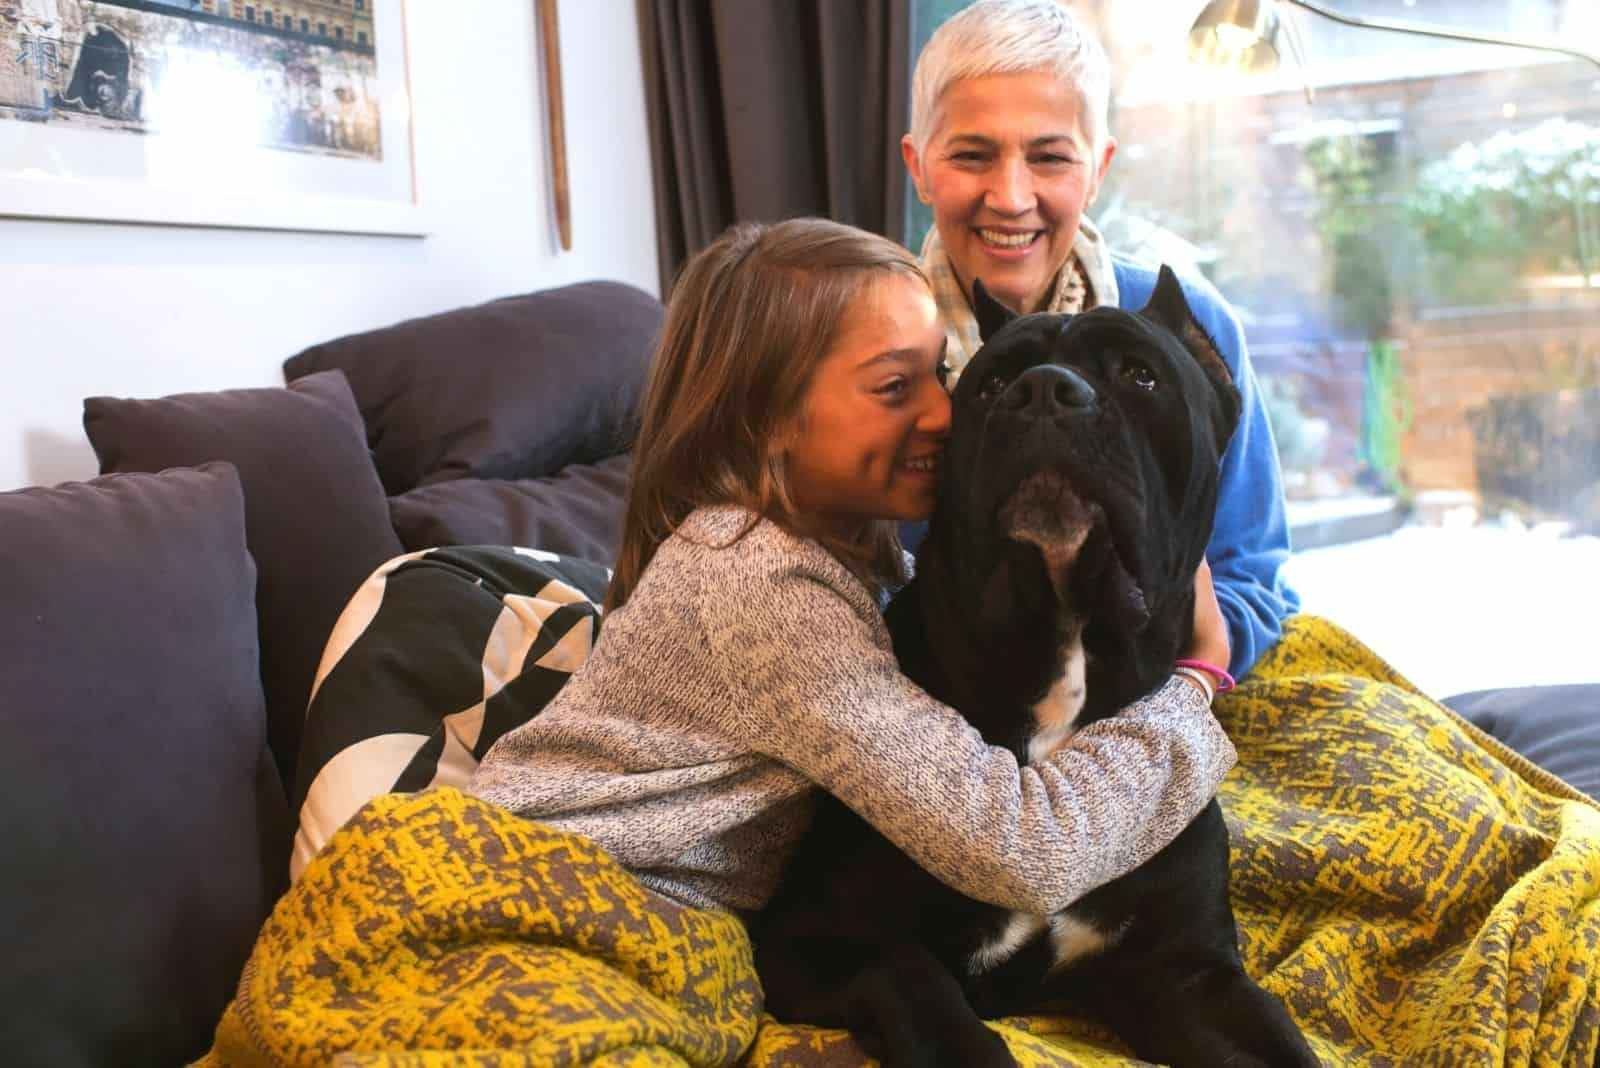 cane corso cuddled by a young kid with her grandmother in the livingroom's sofa